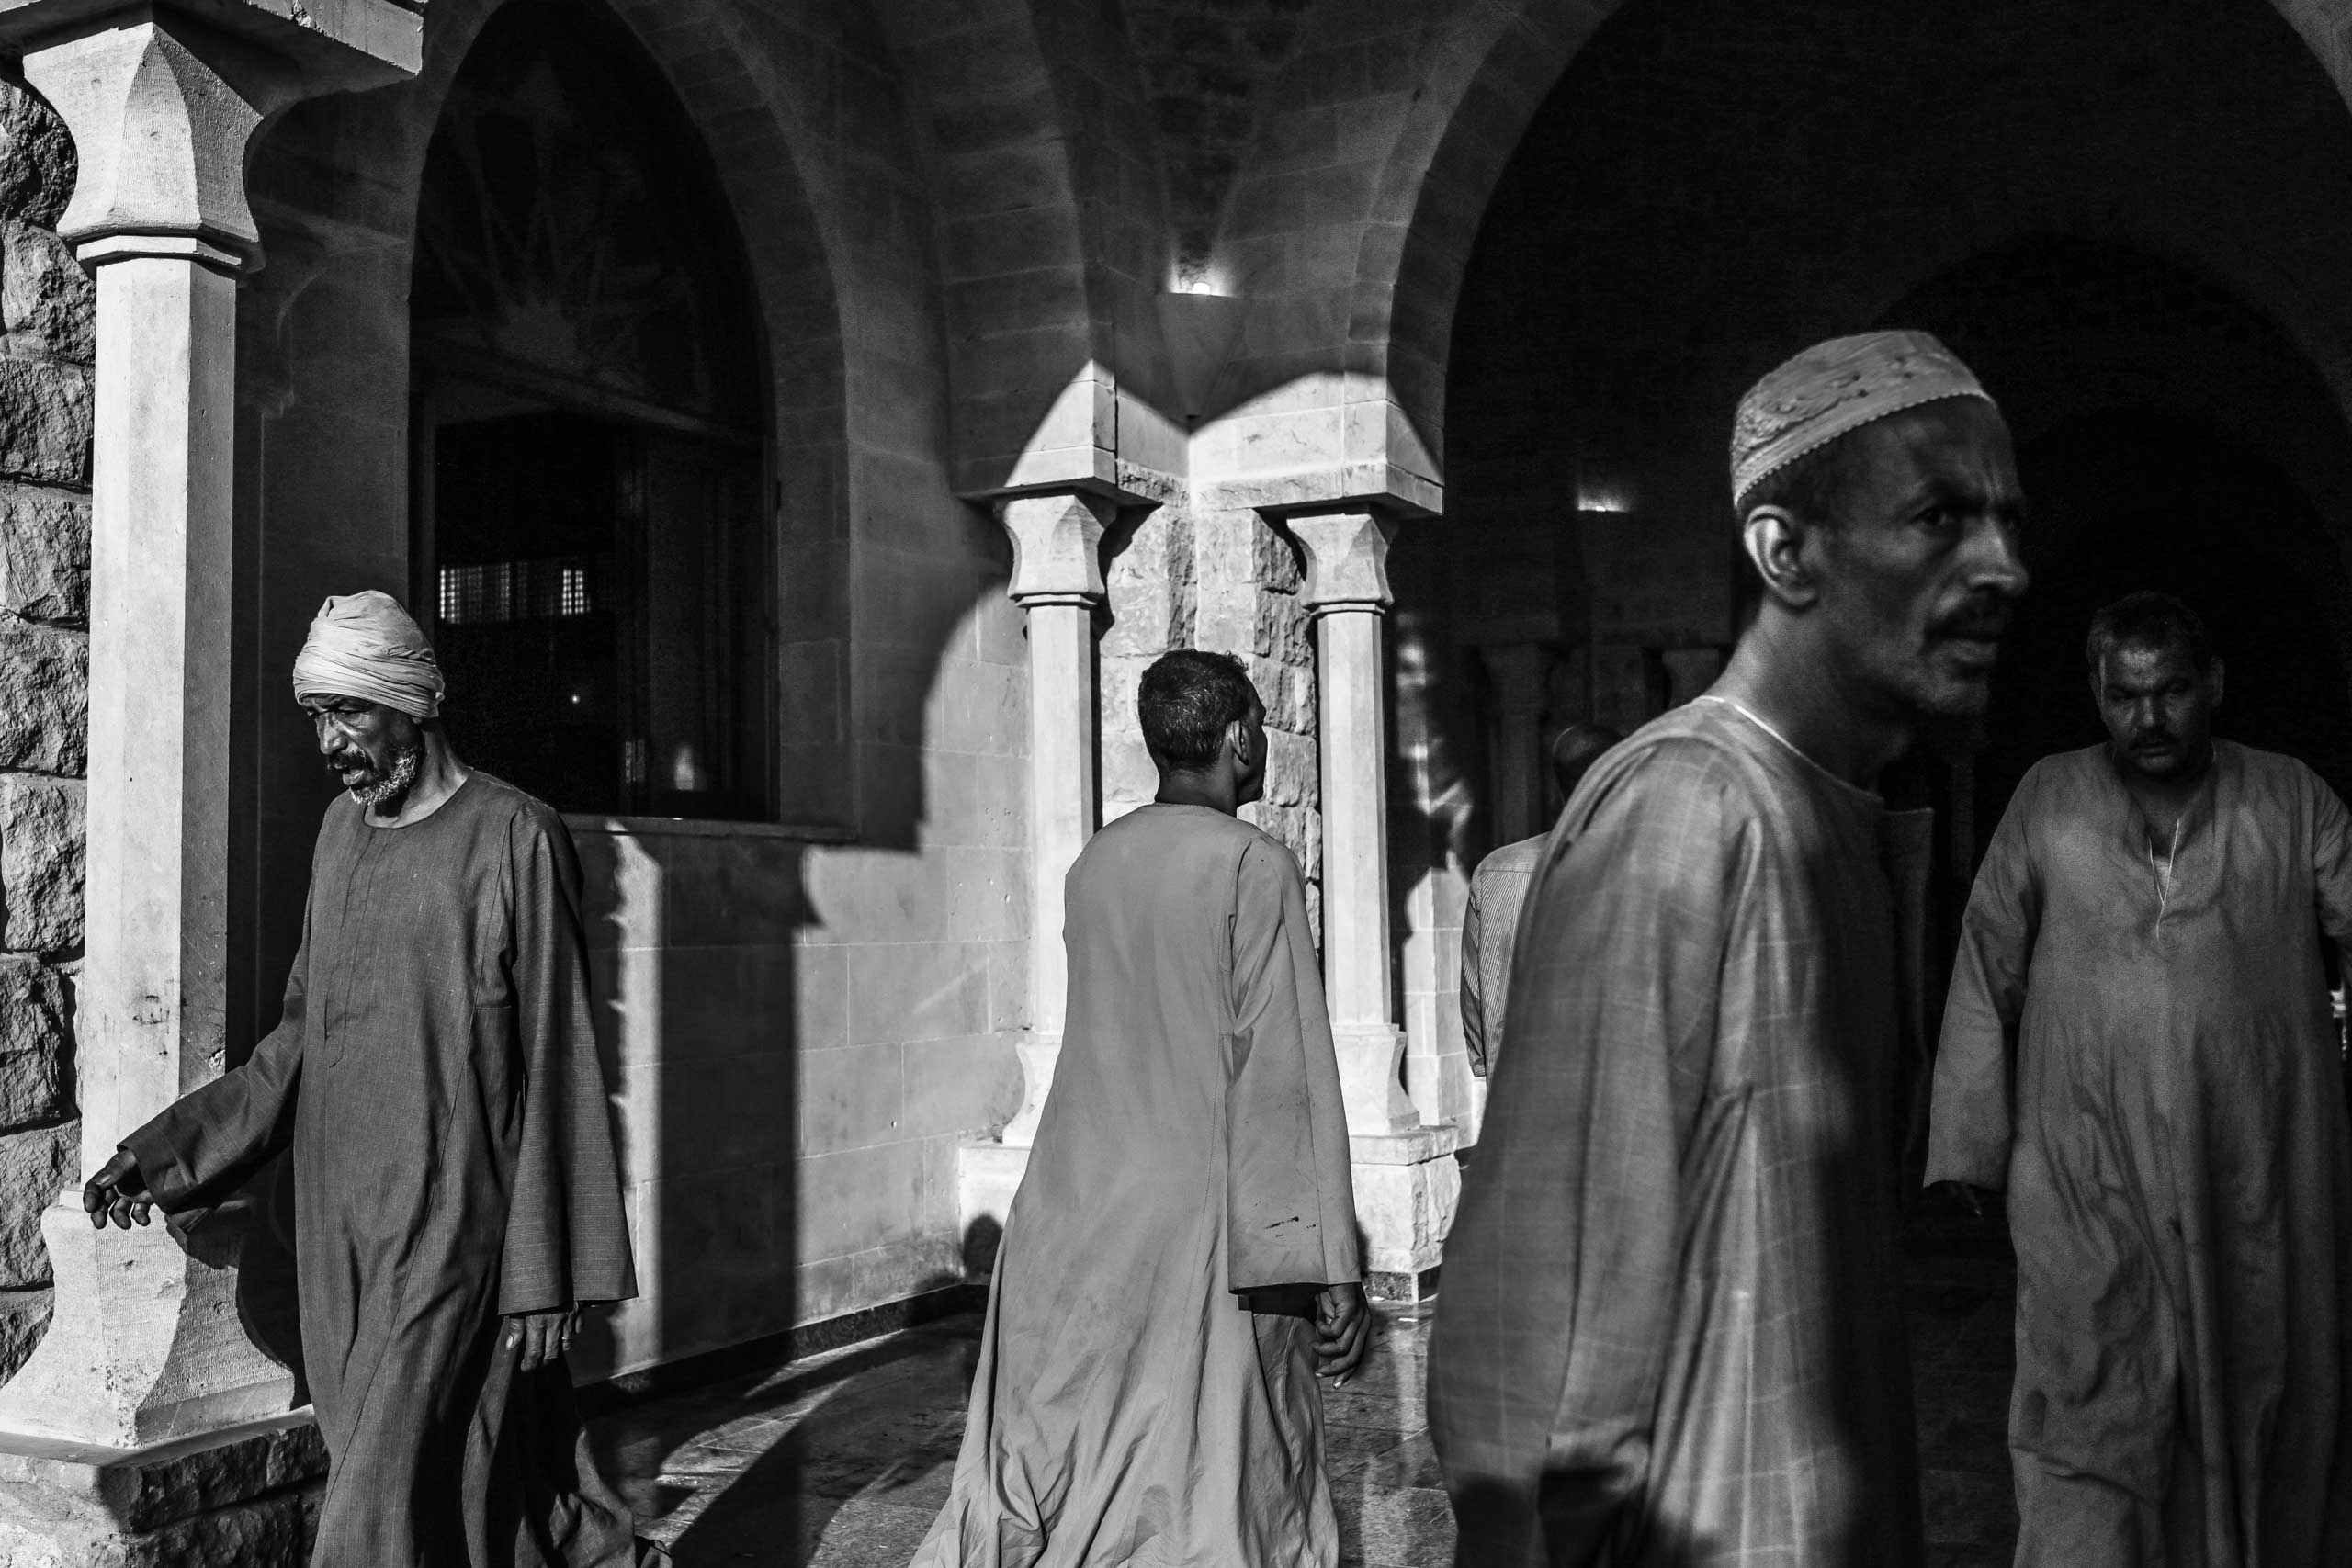 Attendees walk outside the Abul-Hassan Al-Shazly mosque. Humaithara, Red Sea Governorate, Egypt. Oct. 1, 2014.